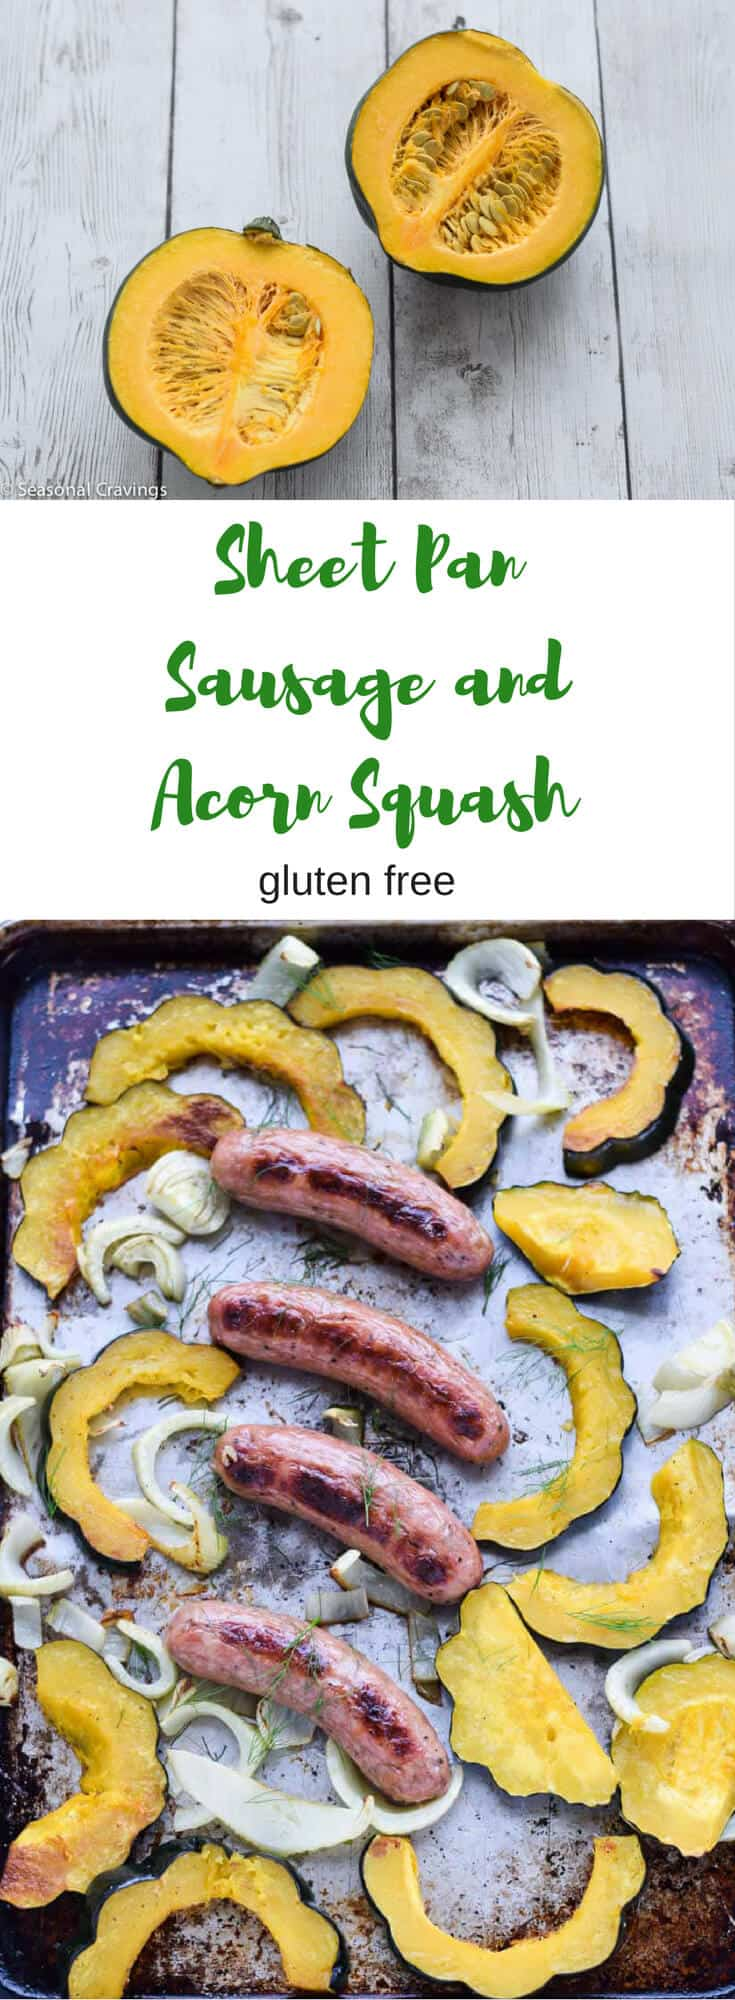 Sheet Pan Sausage and Acorn Squash